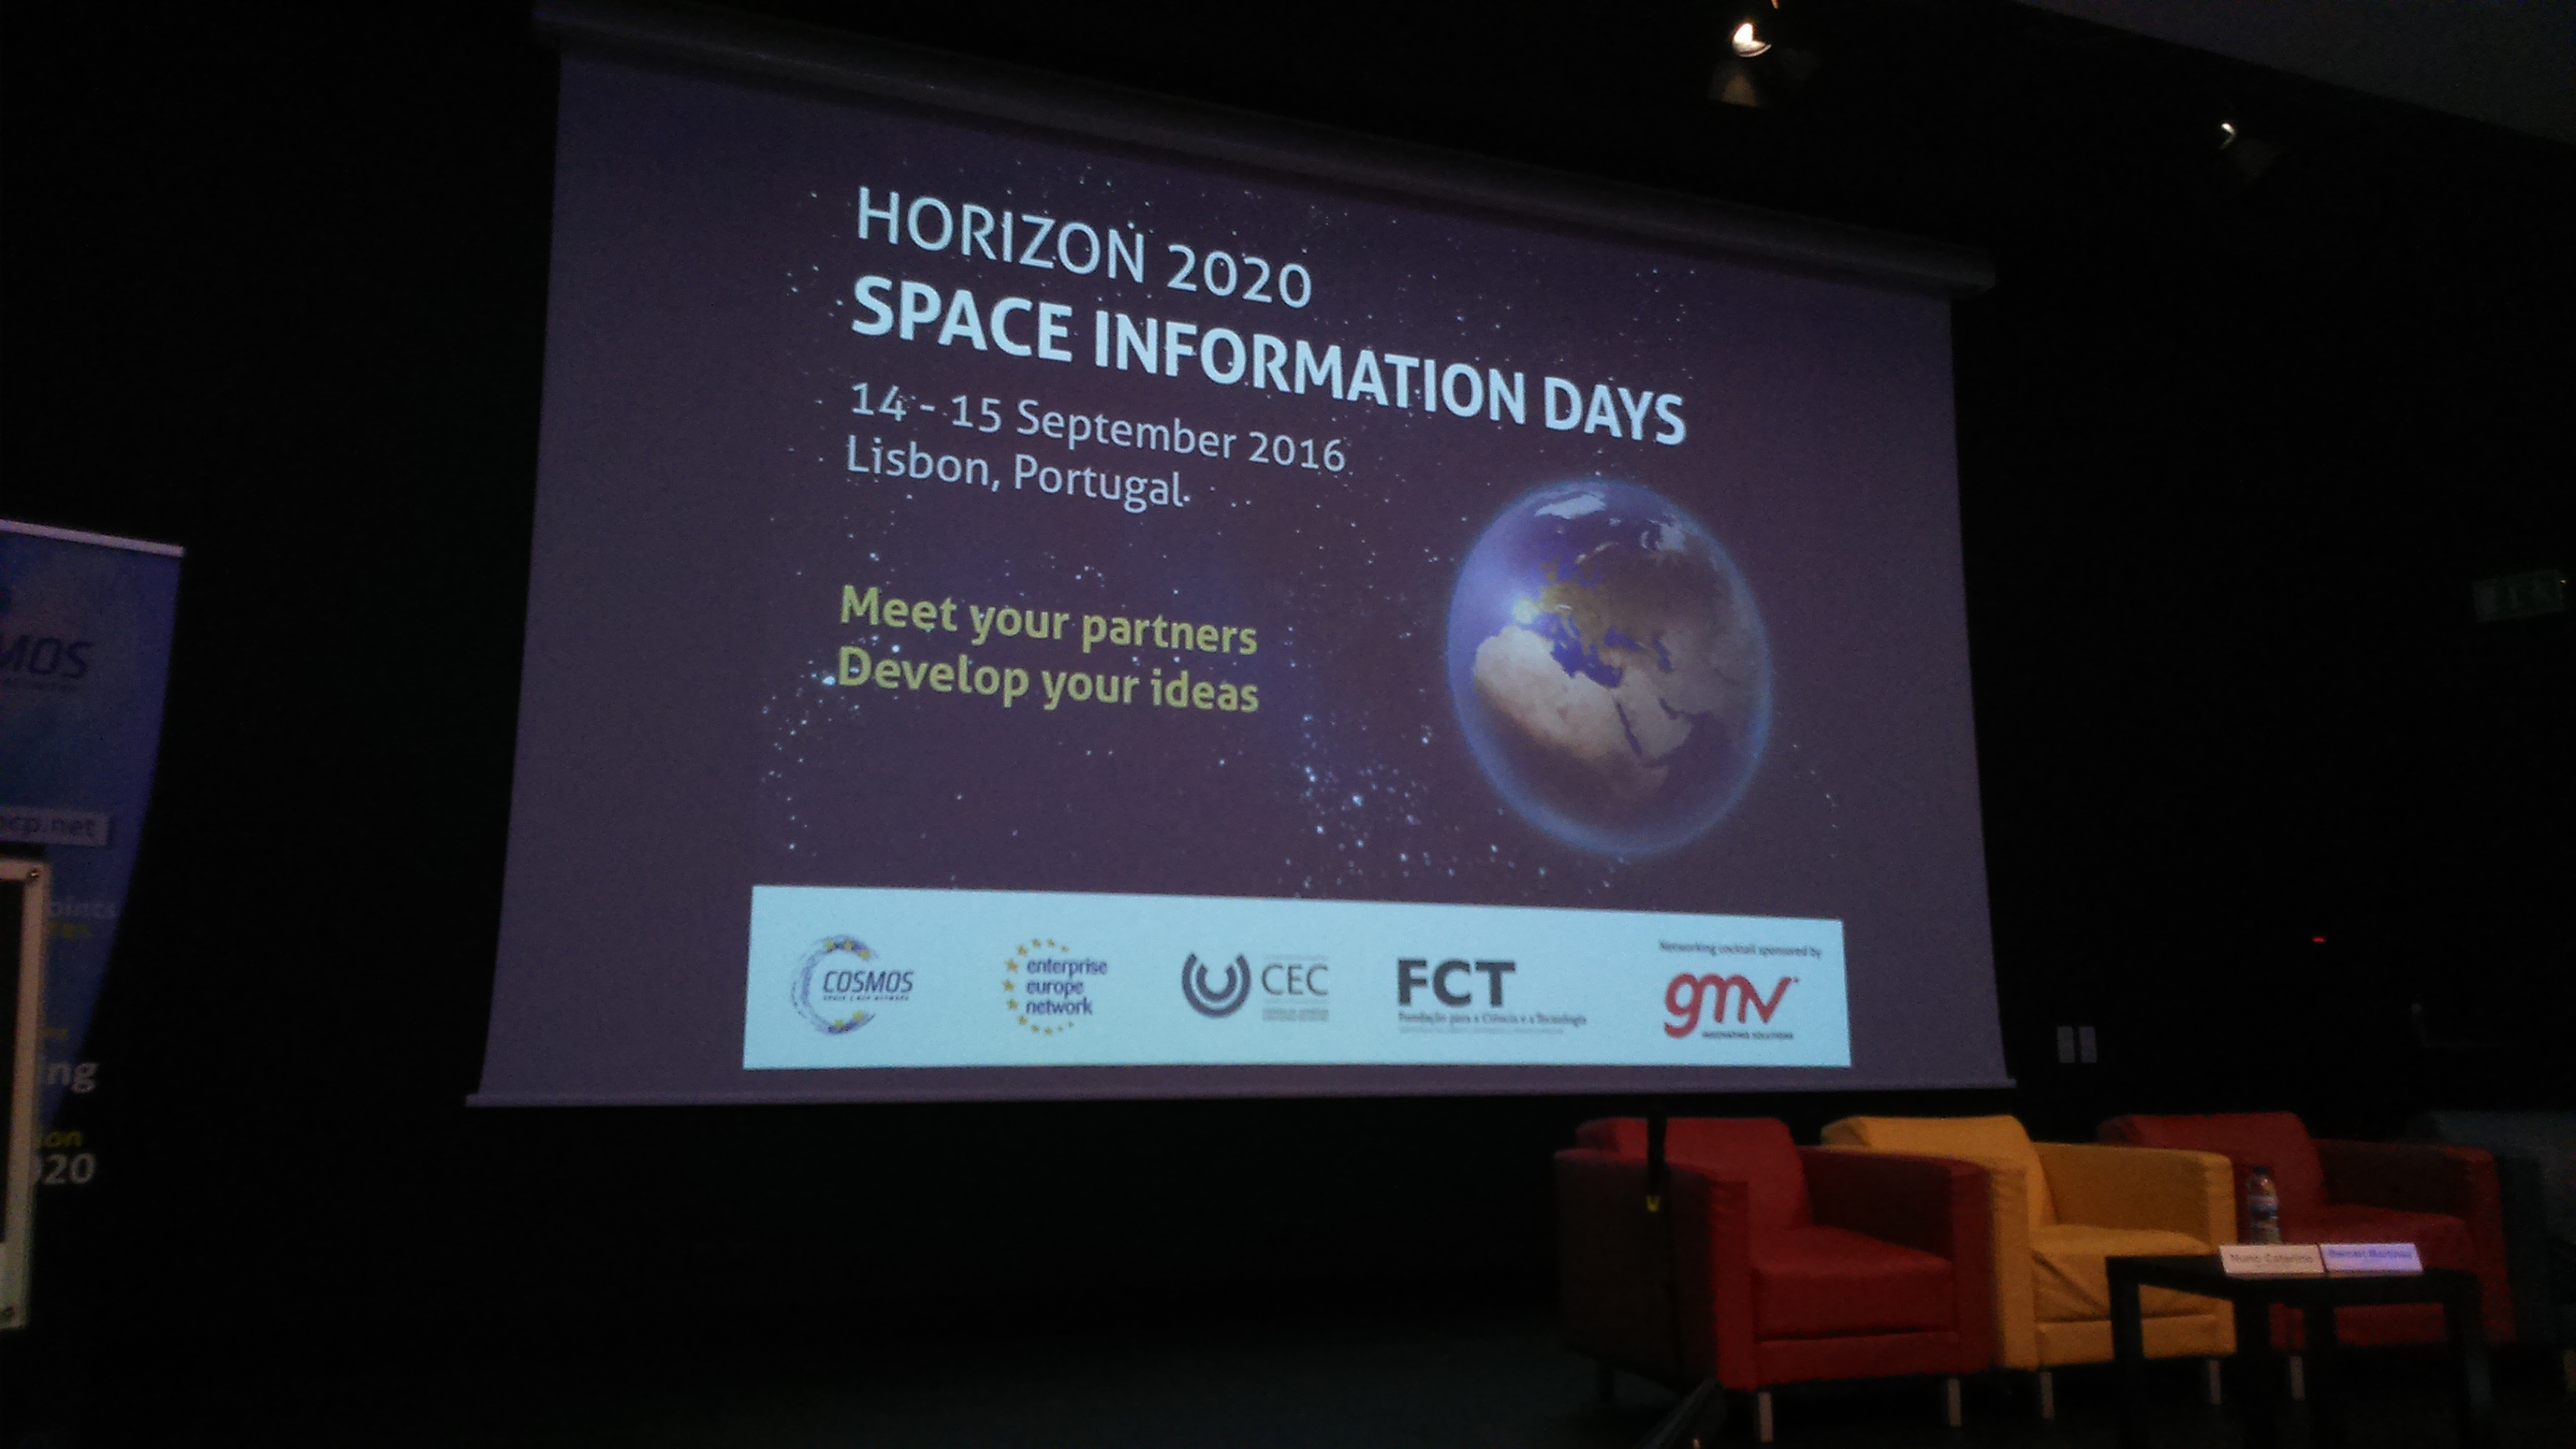 cosmos international space information day lisbon the next cosmos2020 international space information day will take place in the thriving city of lisbon the beautiful capital of